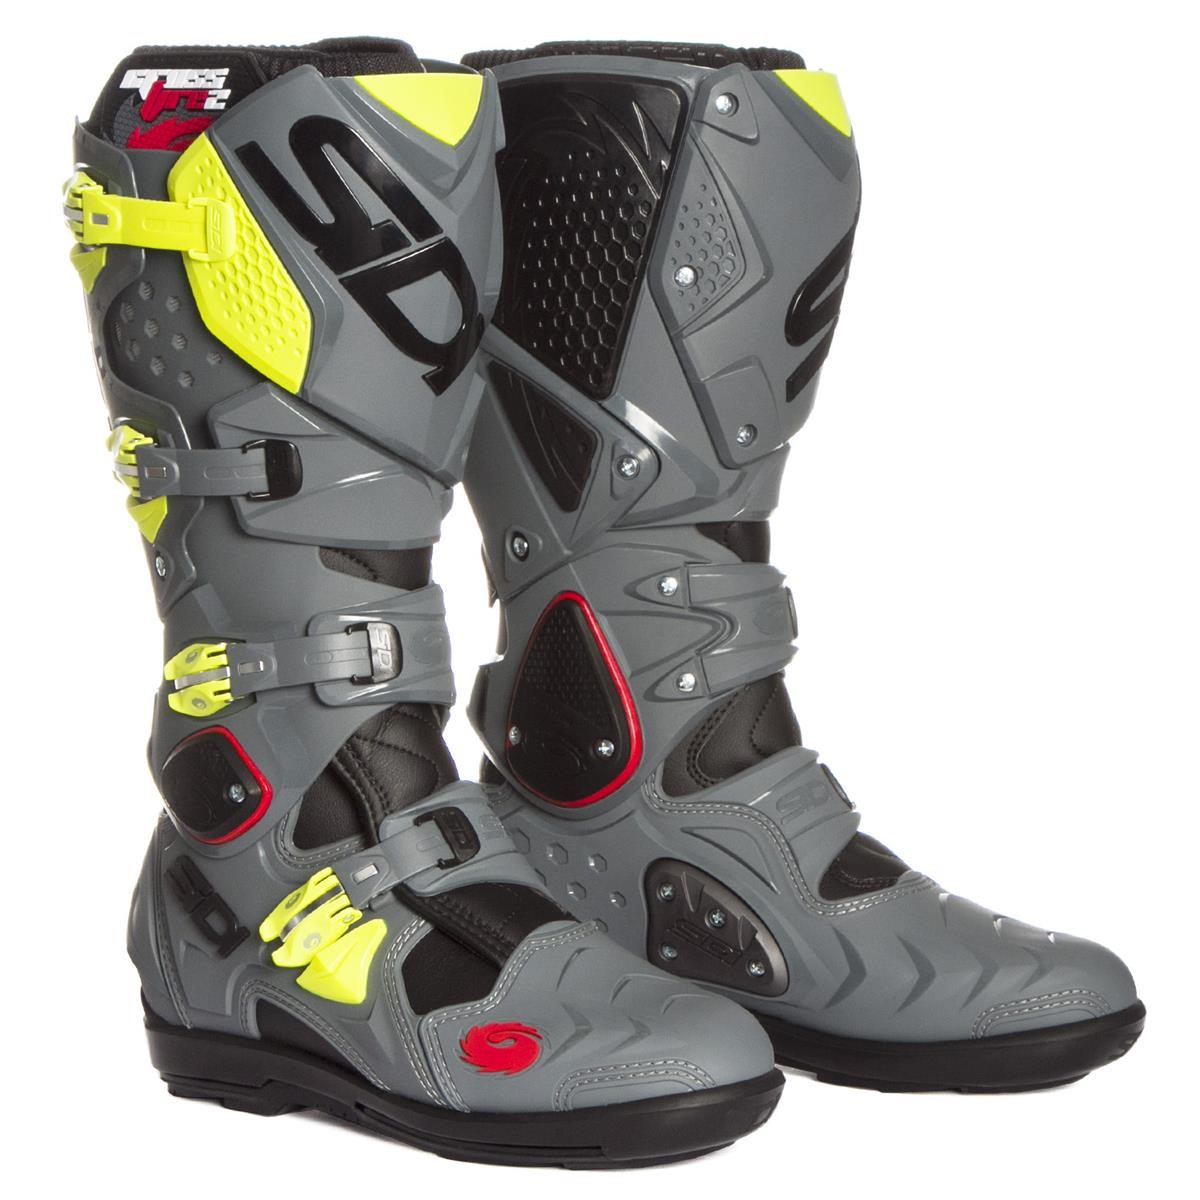 sidi mx boots crossfire 2 srs black grey yellow fluo 2017 maciag offroad. Black Bedroom Furniture Sets. Home Design Ideas